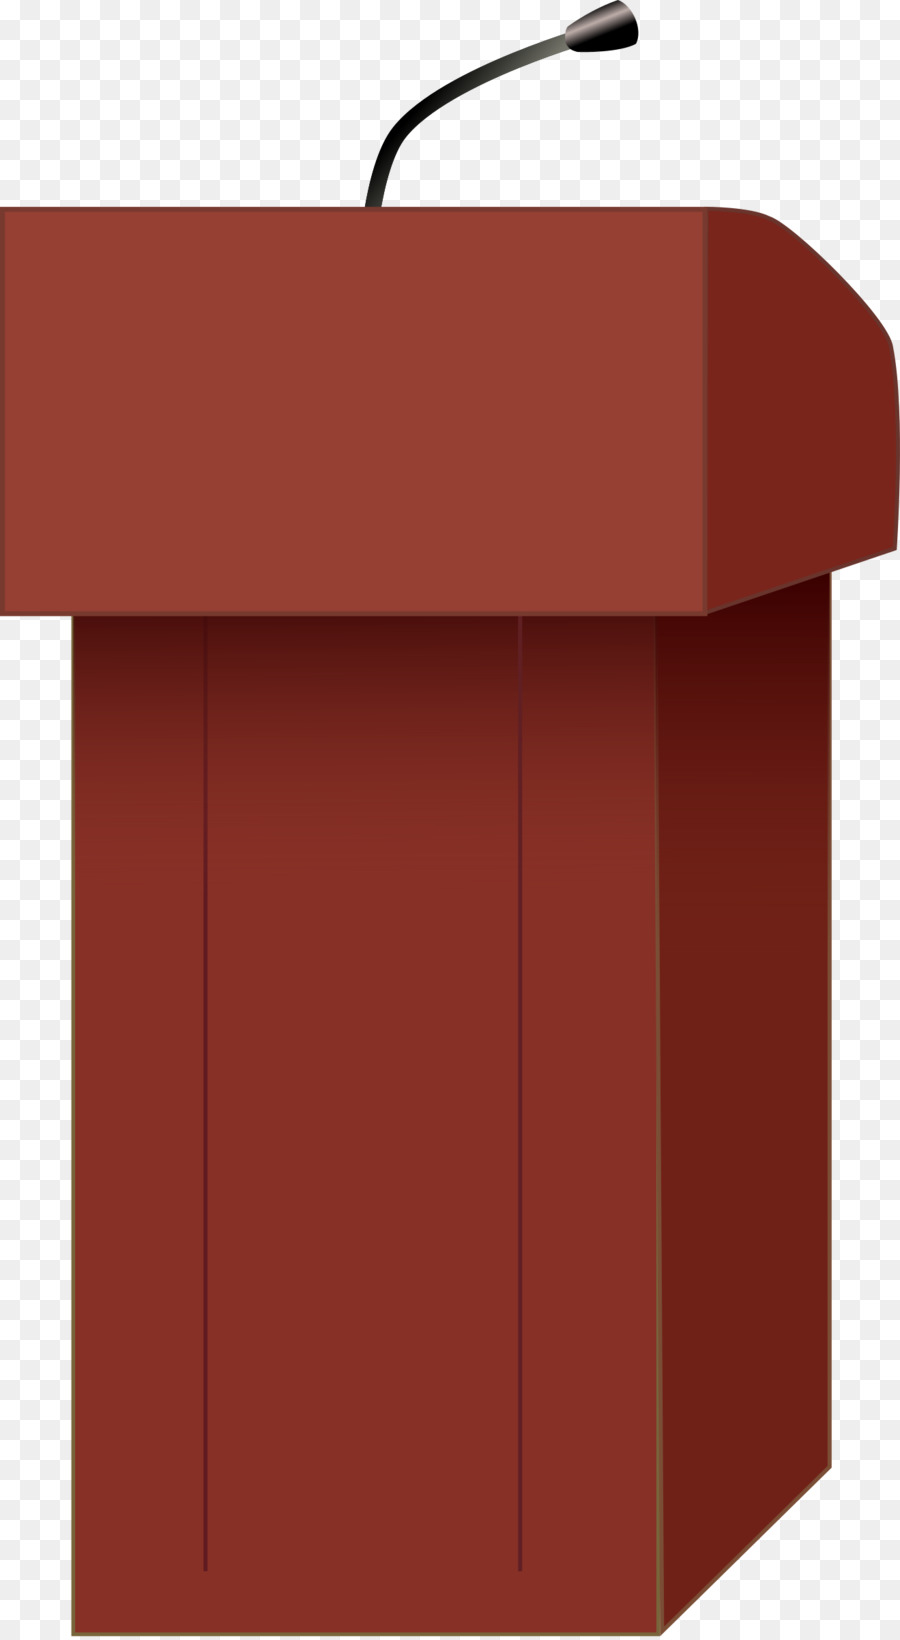 Podium clipart. Table cartoon red line